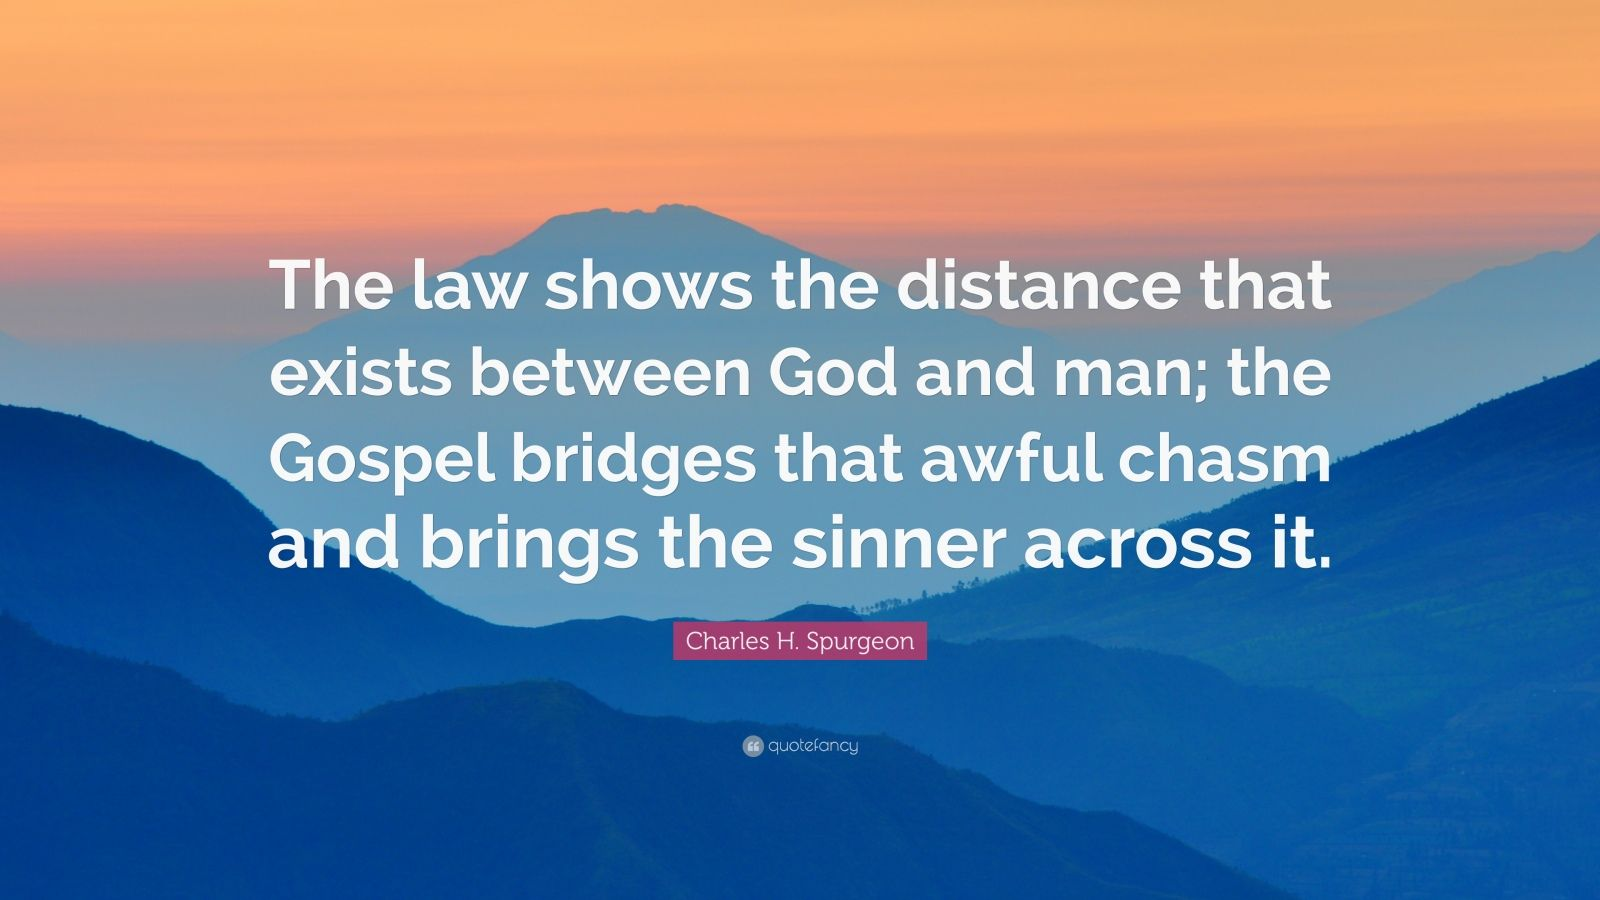 Nick Vujicic Quotes Wallpaper Charles H Spurgeon Quote The Law Shows The Distance